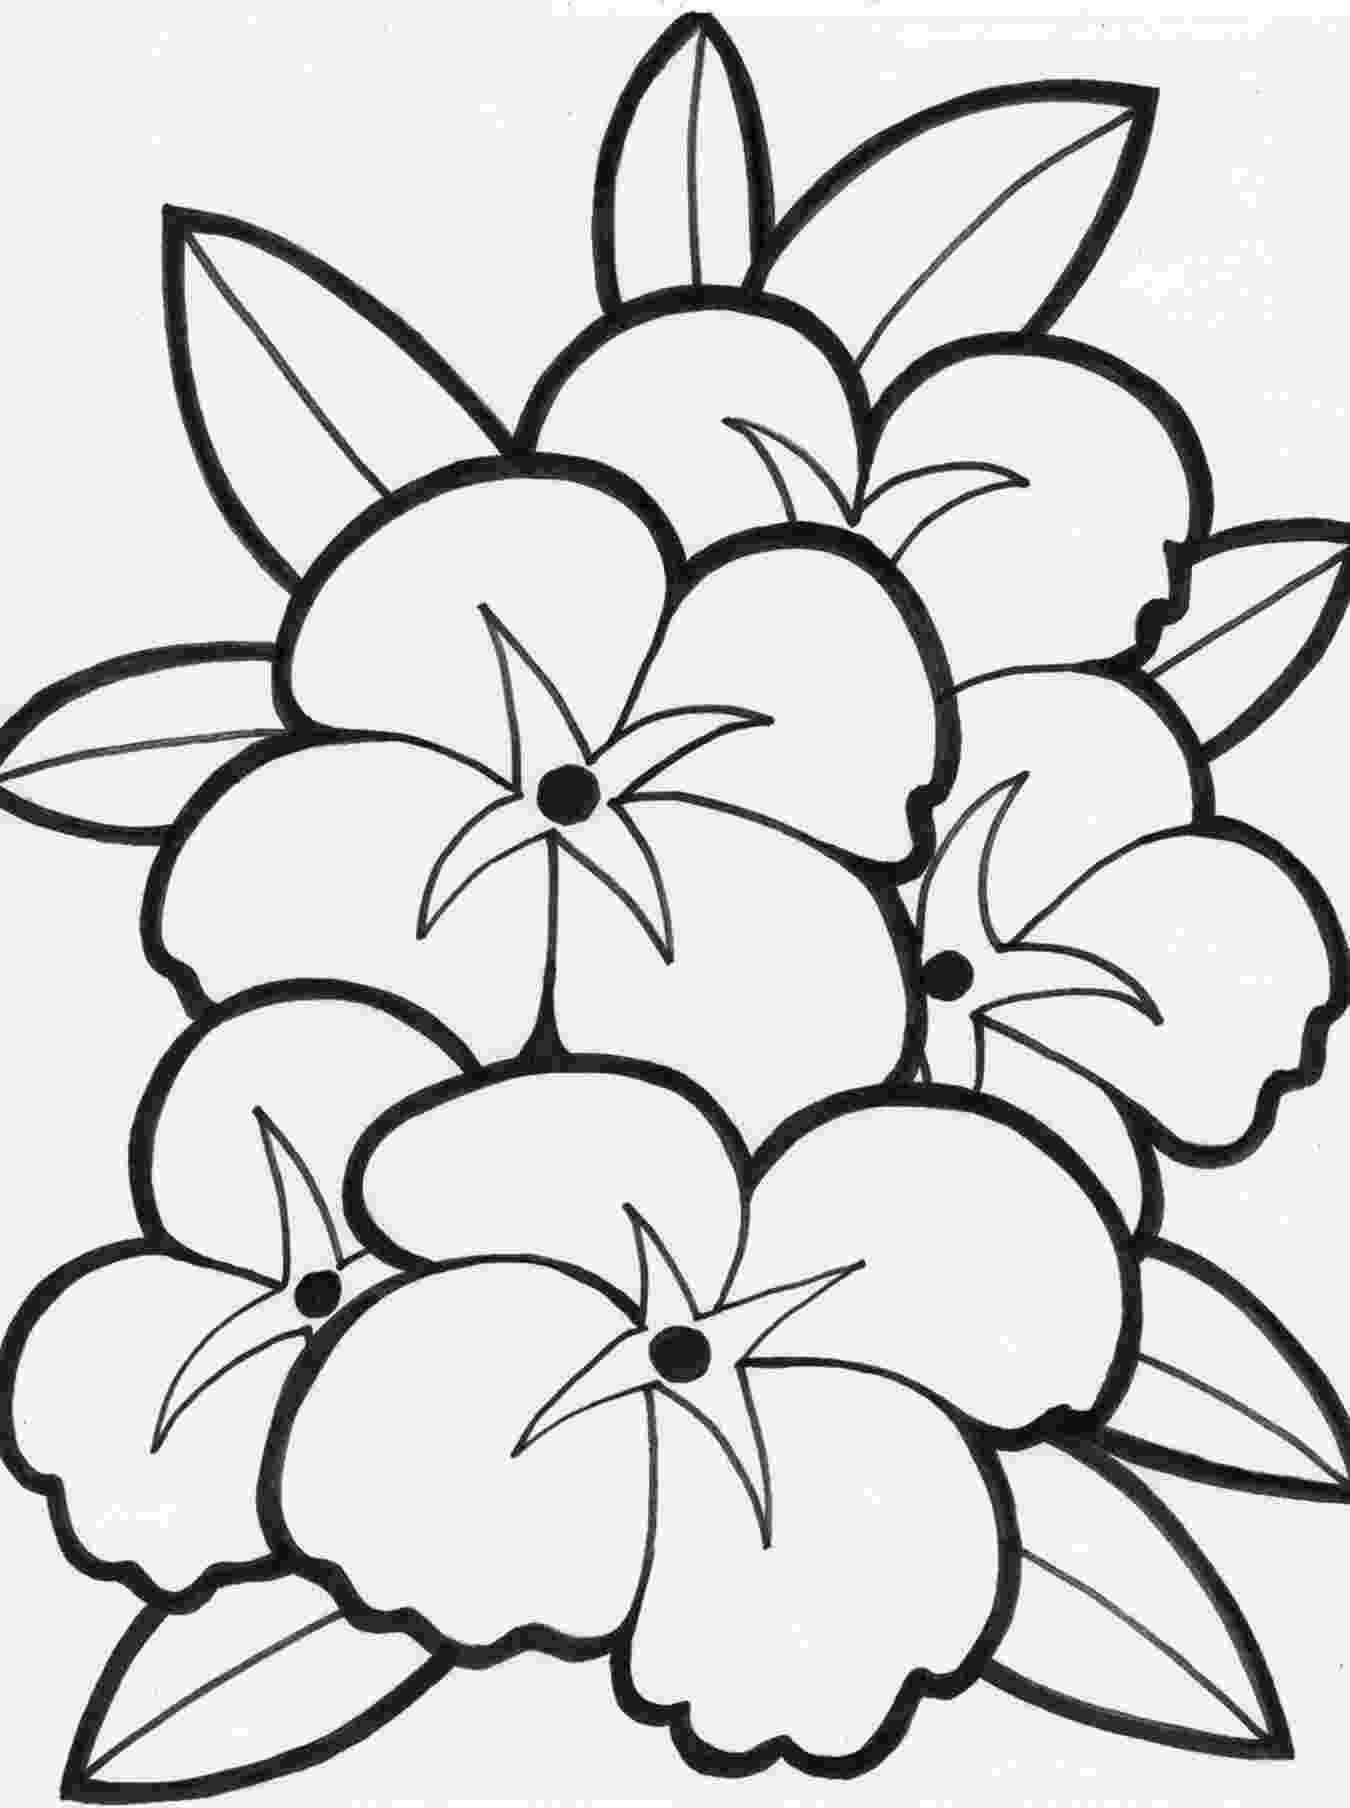 free printable flower coloring pages for adults flower coloring pages for adults best coloring pages for free adults pages coloring for flower printable